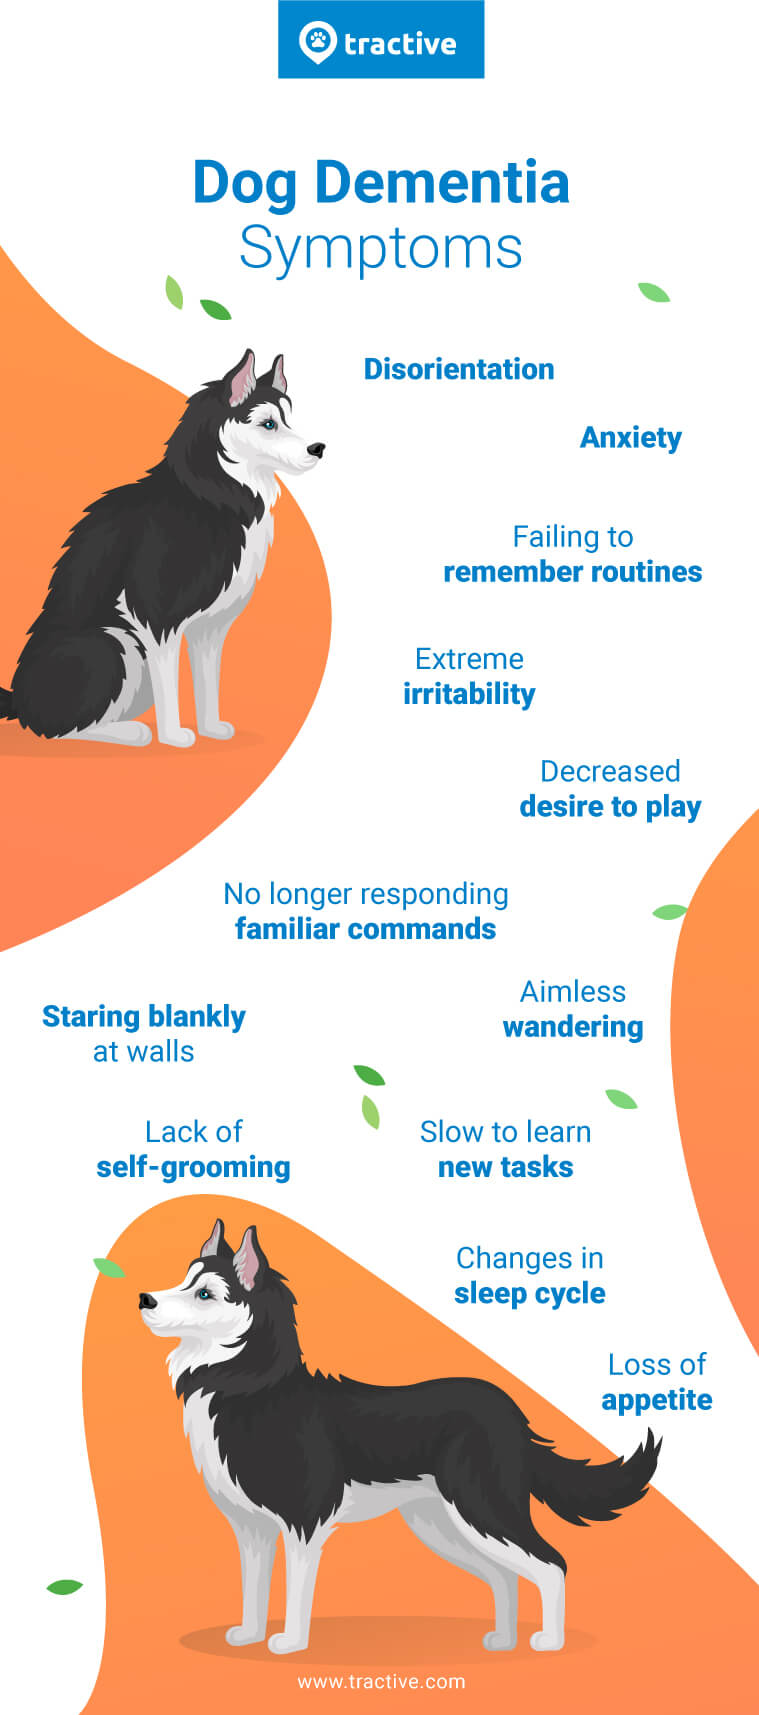 Dog dementia symptoms